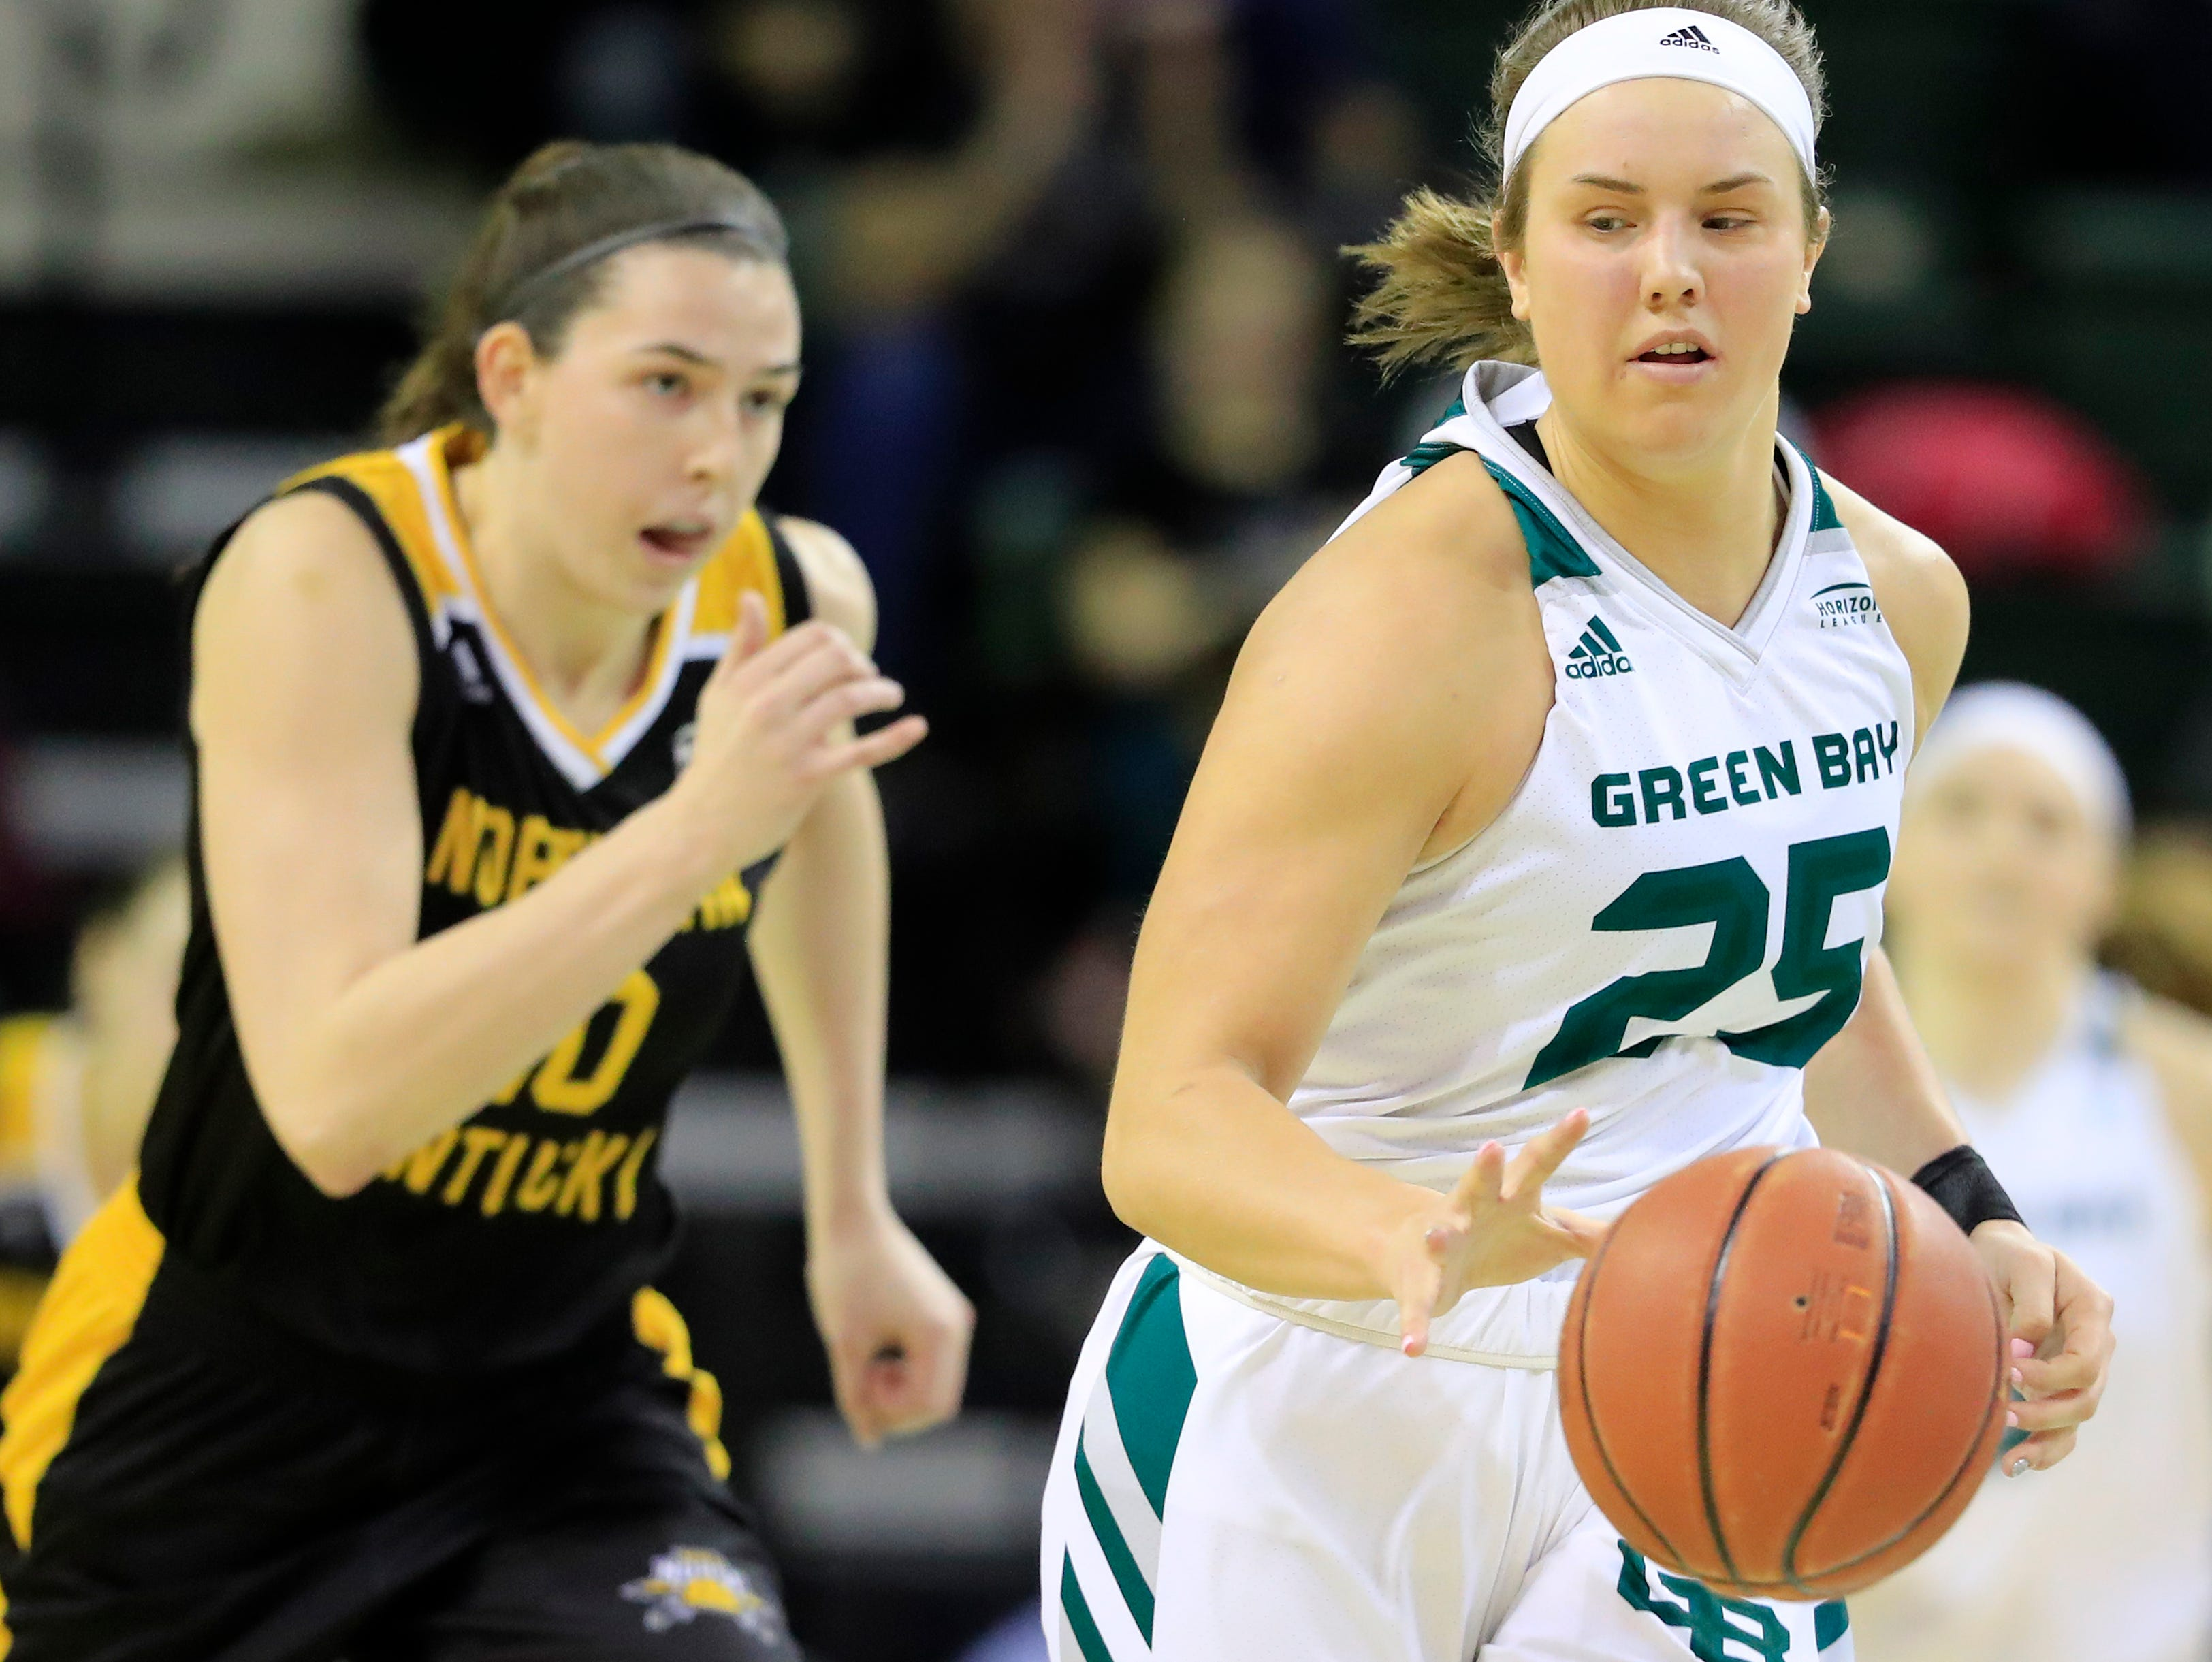 Green Bay Phoenix guard/forward Lyndsey Robson (25) leads a break against the Northern Kentucky Norse in a Horizon League women's basketball game at the Kress Center on Thursday, February 7, 2019 in Green Bay, Wis.